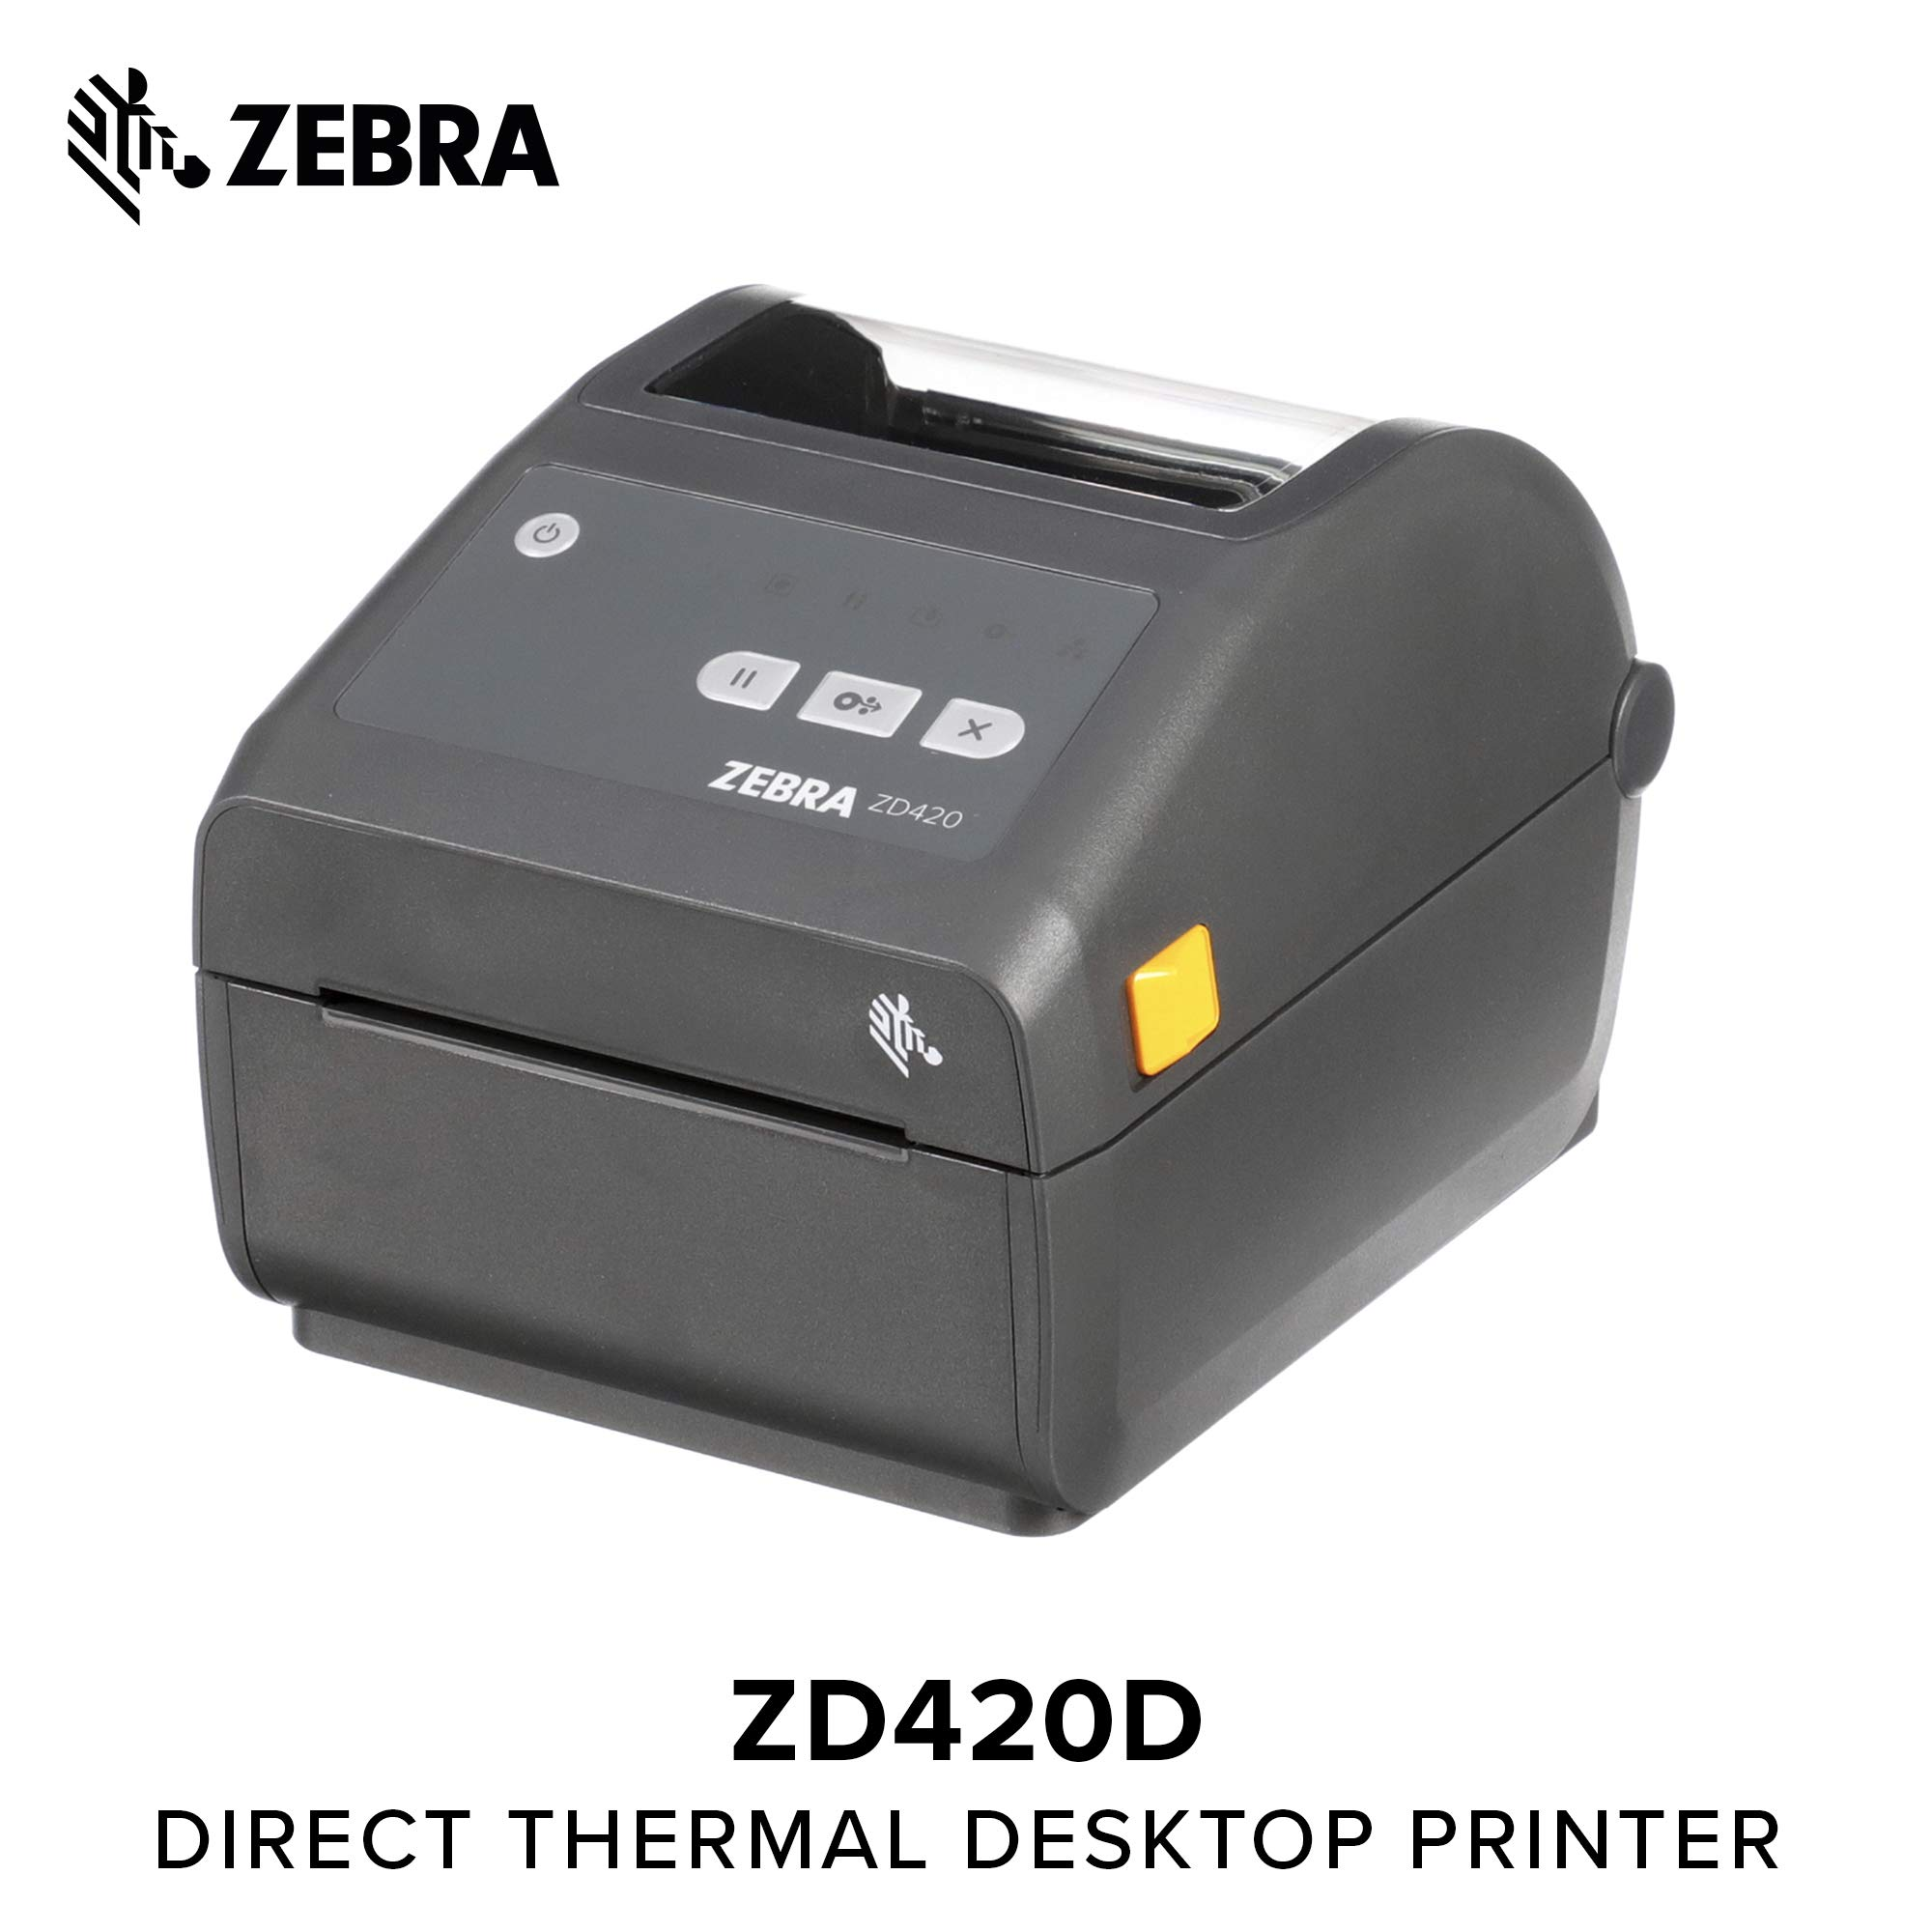 Zebra - ZD420d Direct Thermal Desktop Printer for Labels and Barcodes - Print Width 4 in - 203 dpi - Interface: USB - ZD42042-D01000EZ